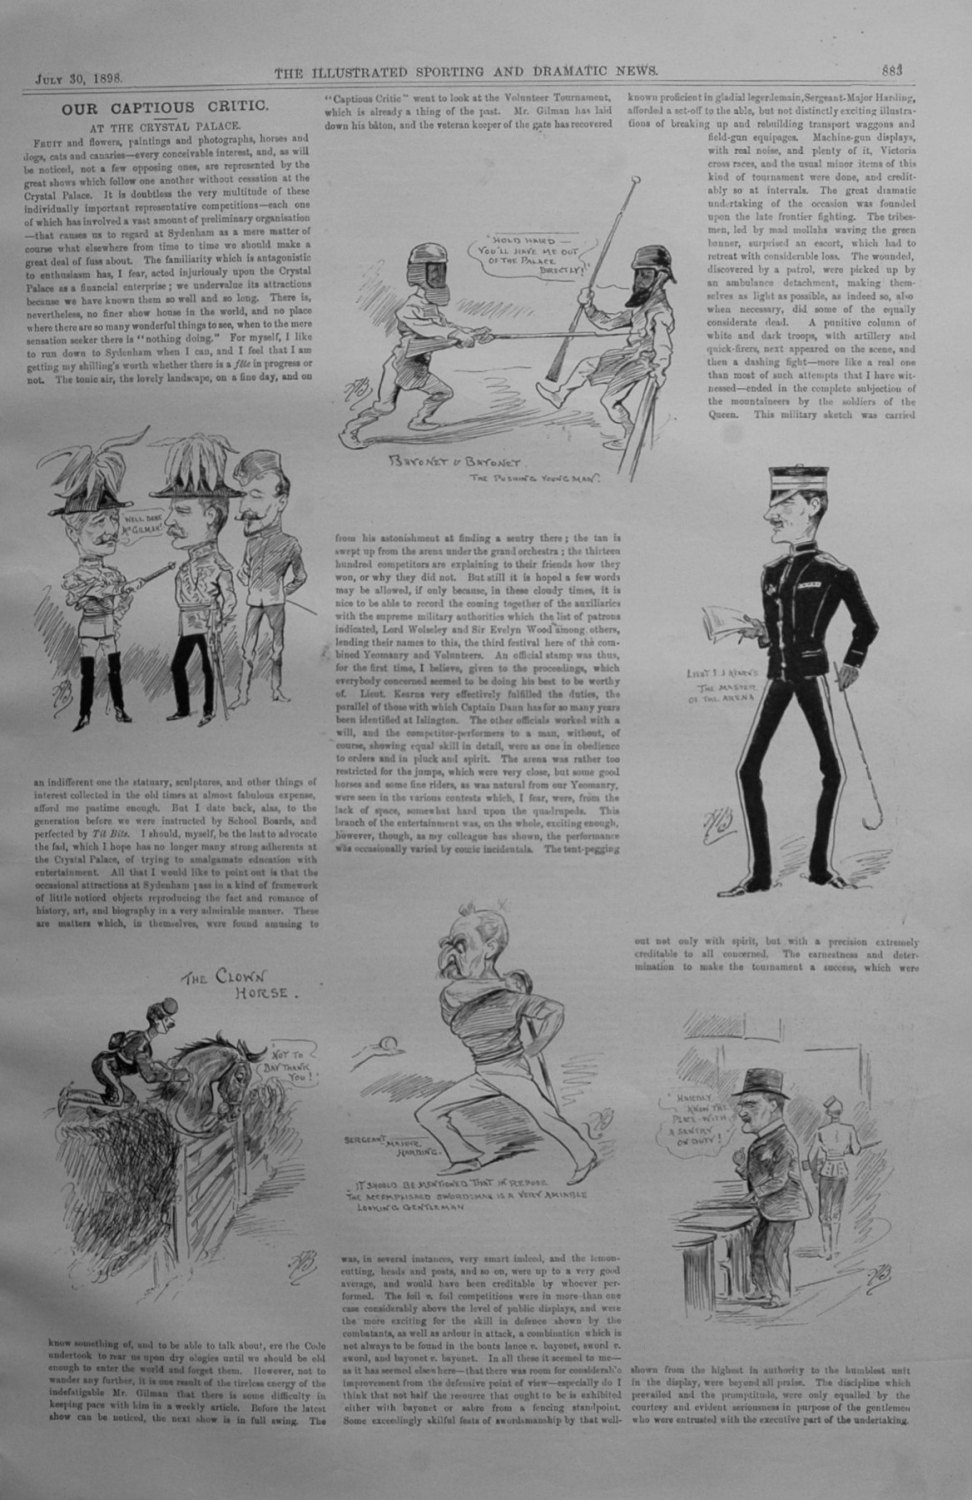 Our Captious Critic, July 30th 1898.